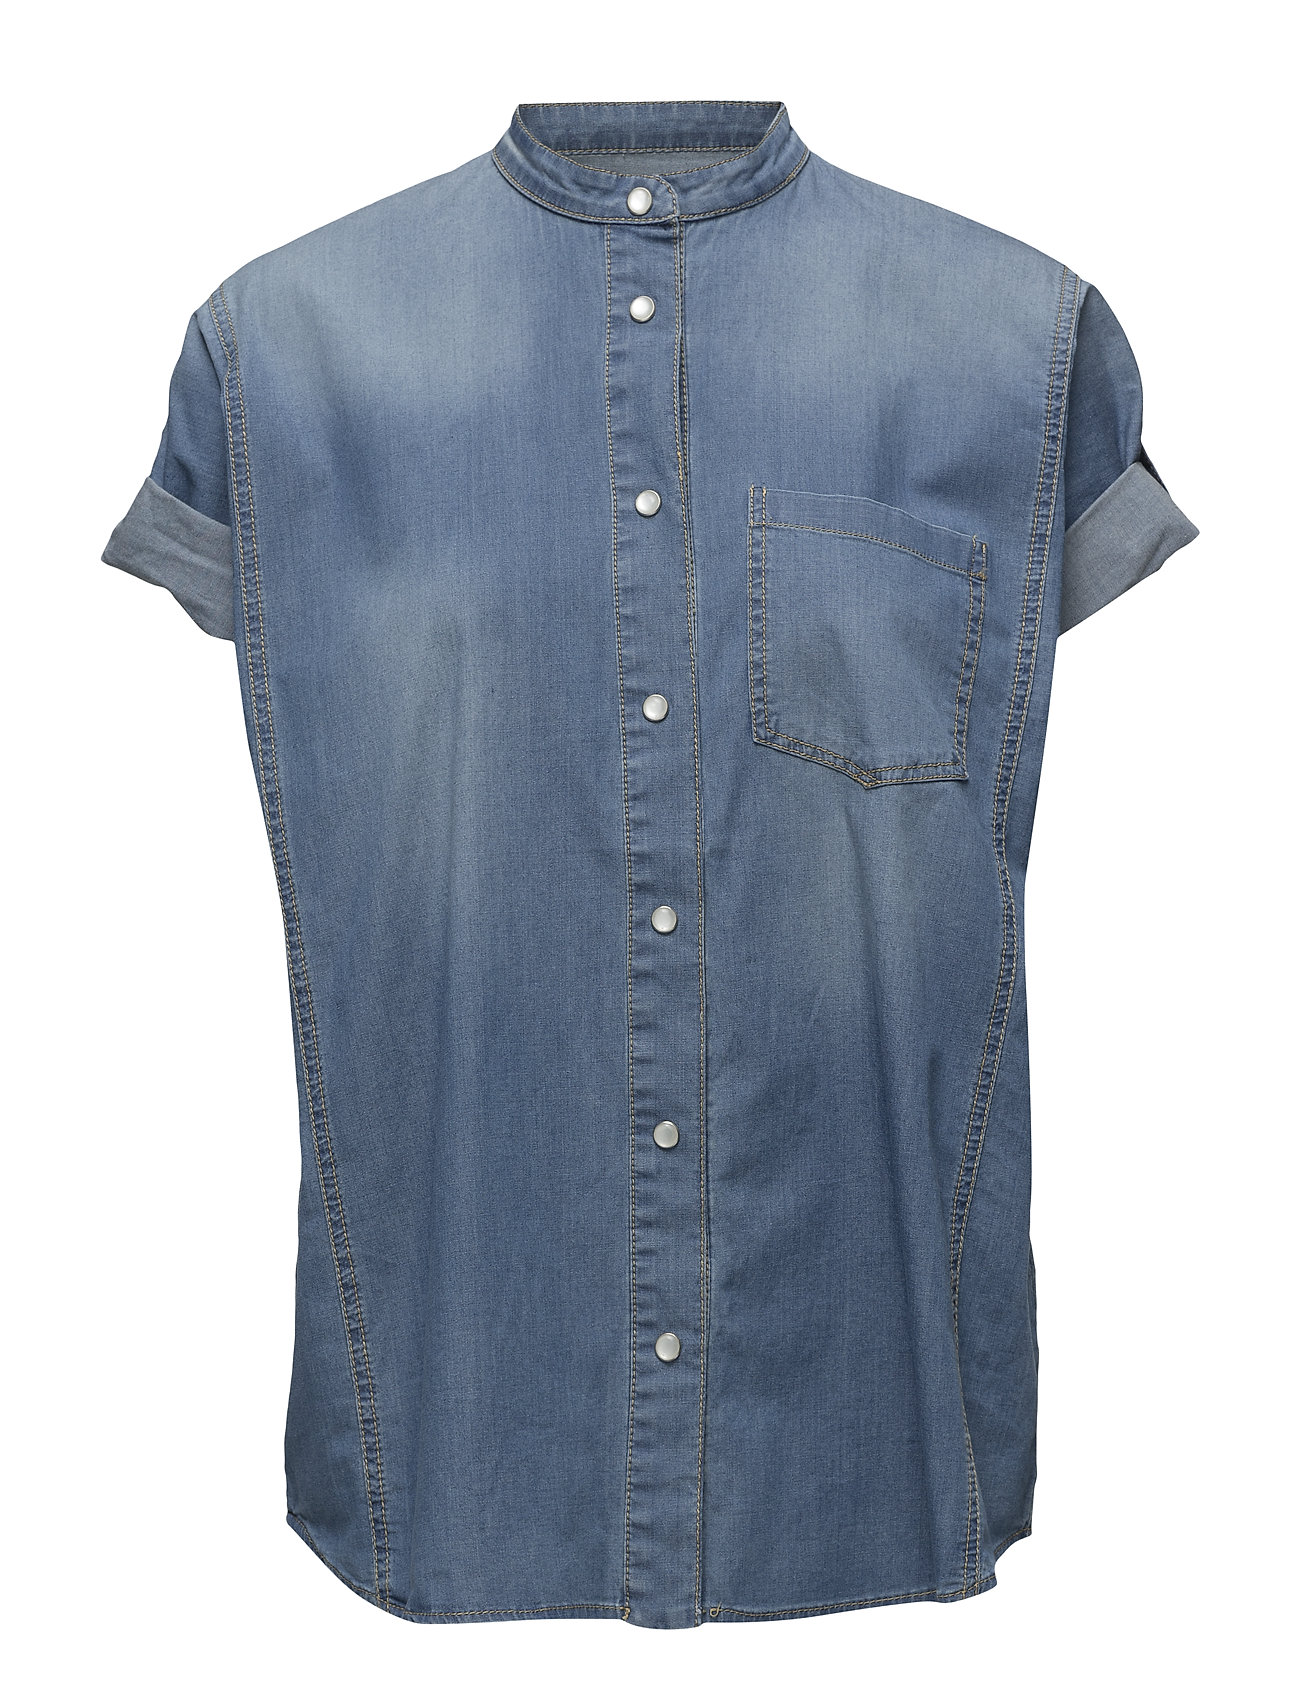 09ef2ba1c538a0 Waving Denim Shirt (Light Indigo With Abrasion) (£75) - Hunkydory ...